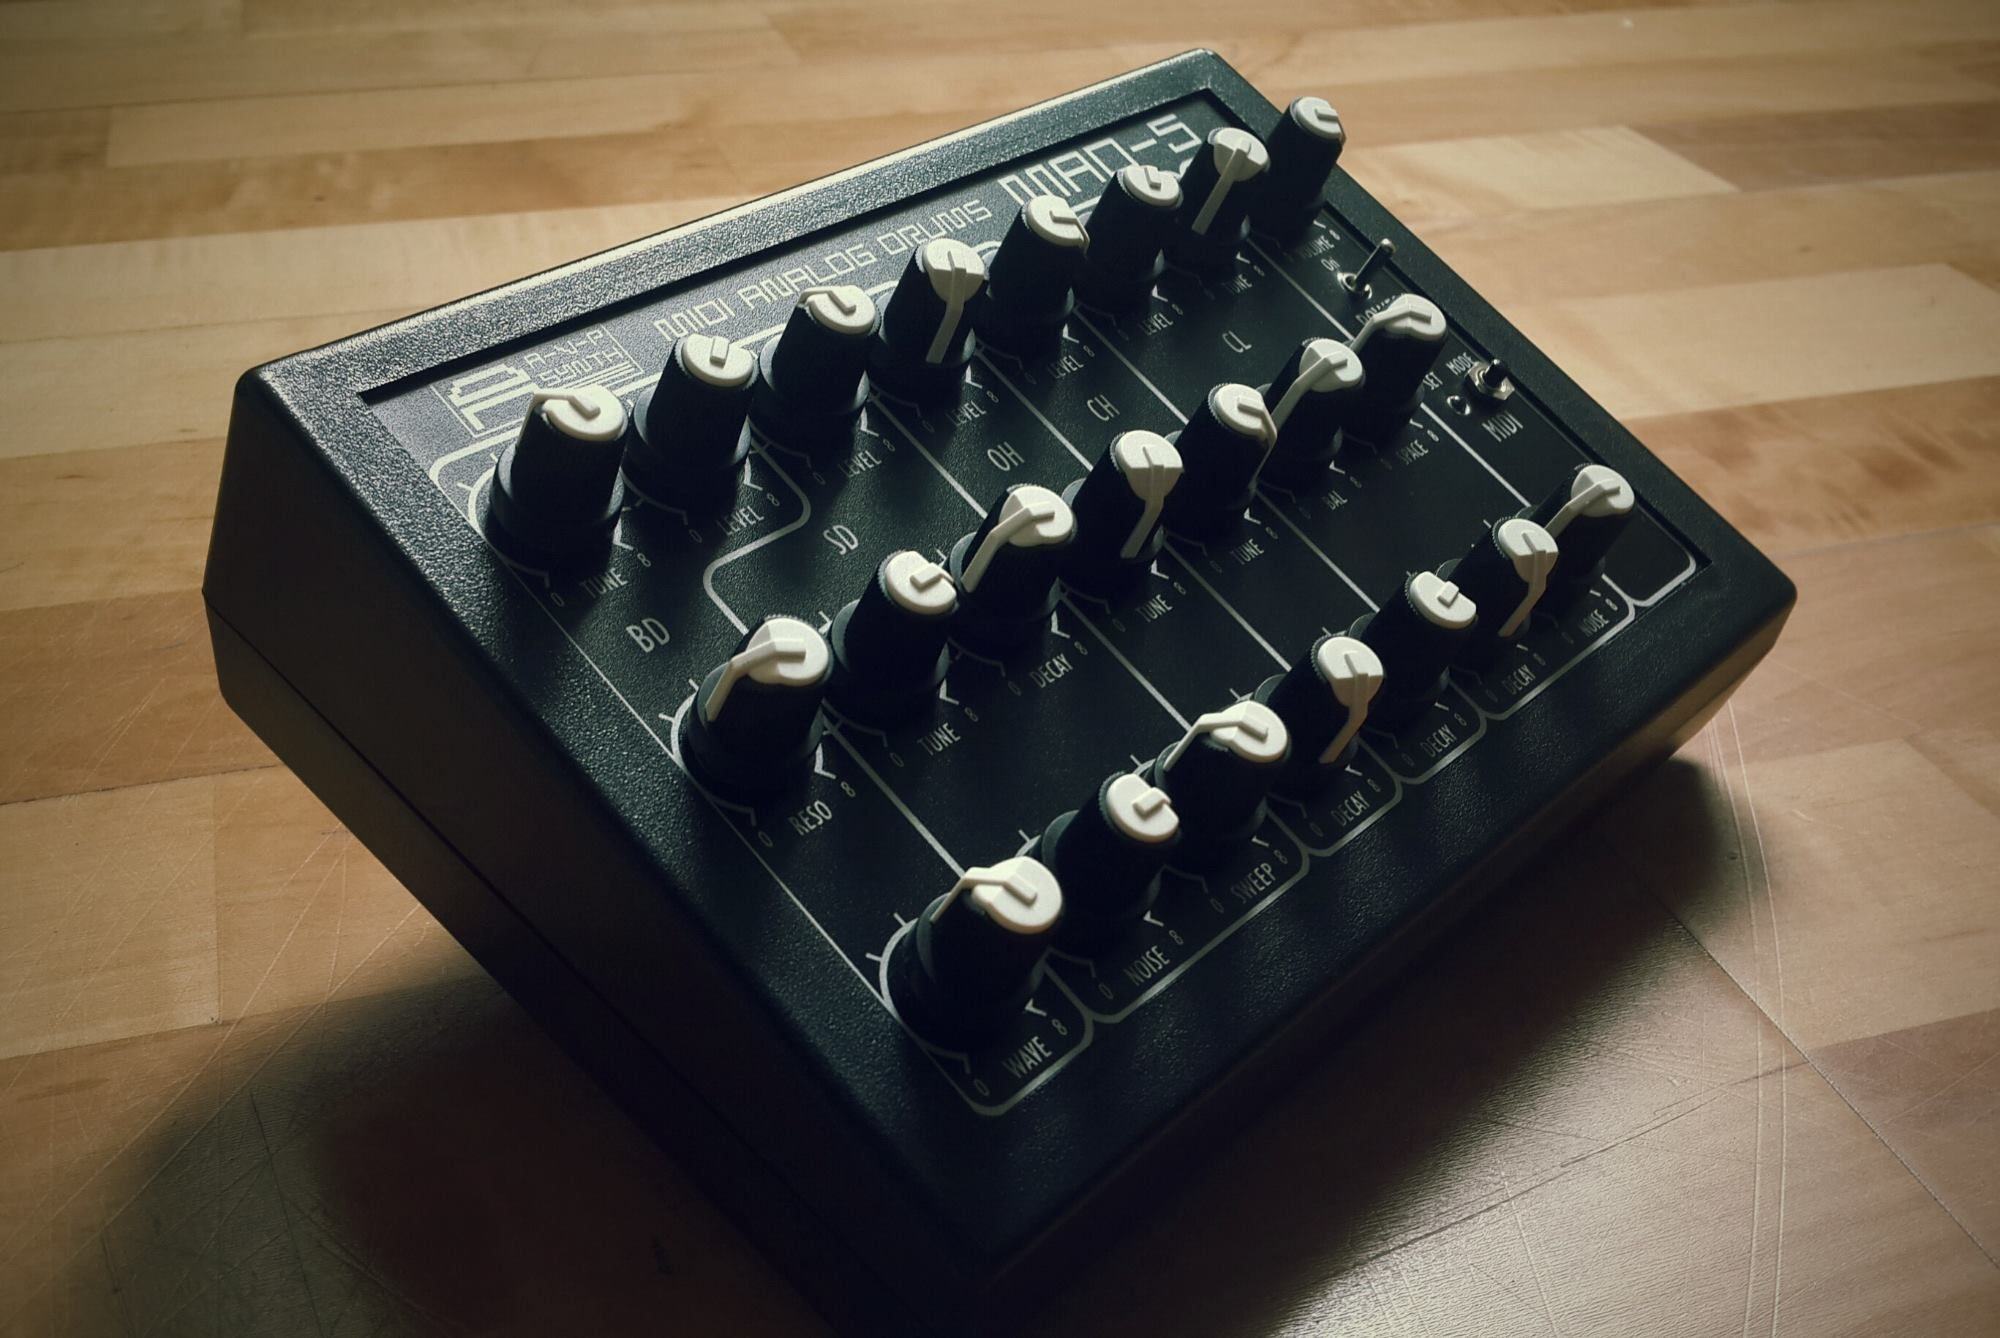 This drum machine is inspired by vintage Soviet-era hardware